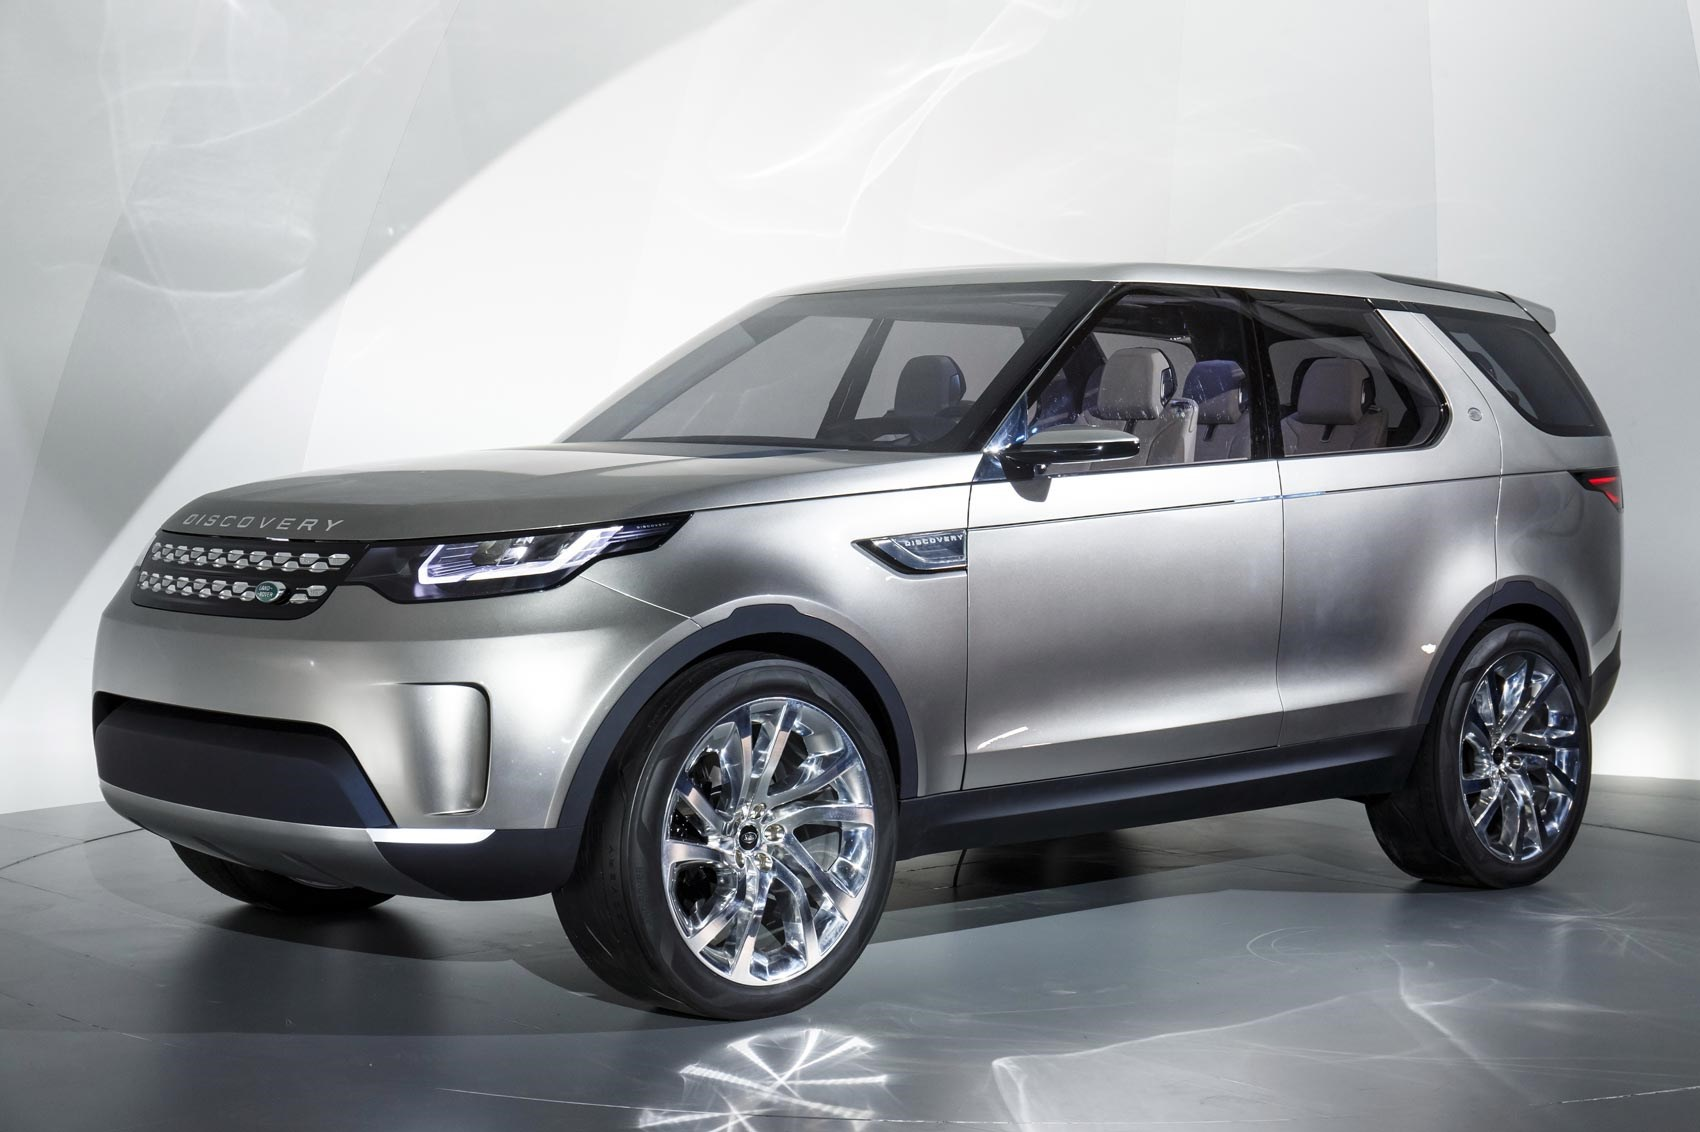 Land Rover Cars in Pakistan Prices Reviews & More